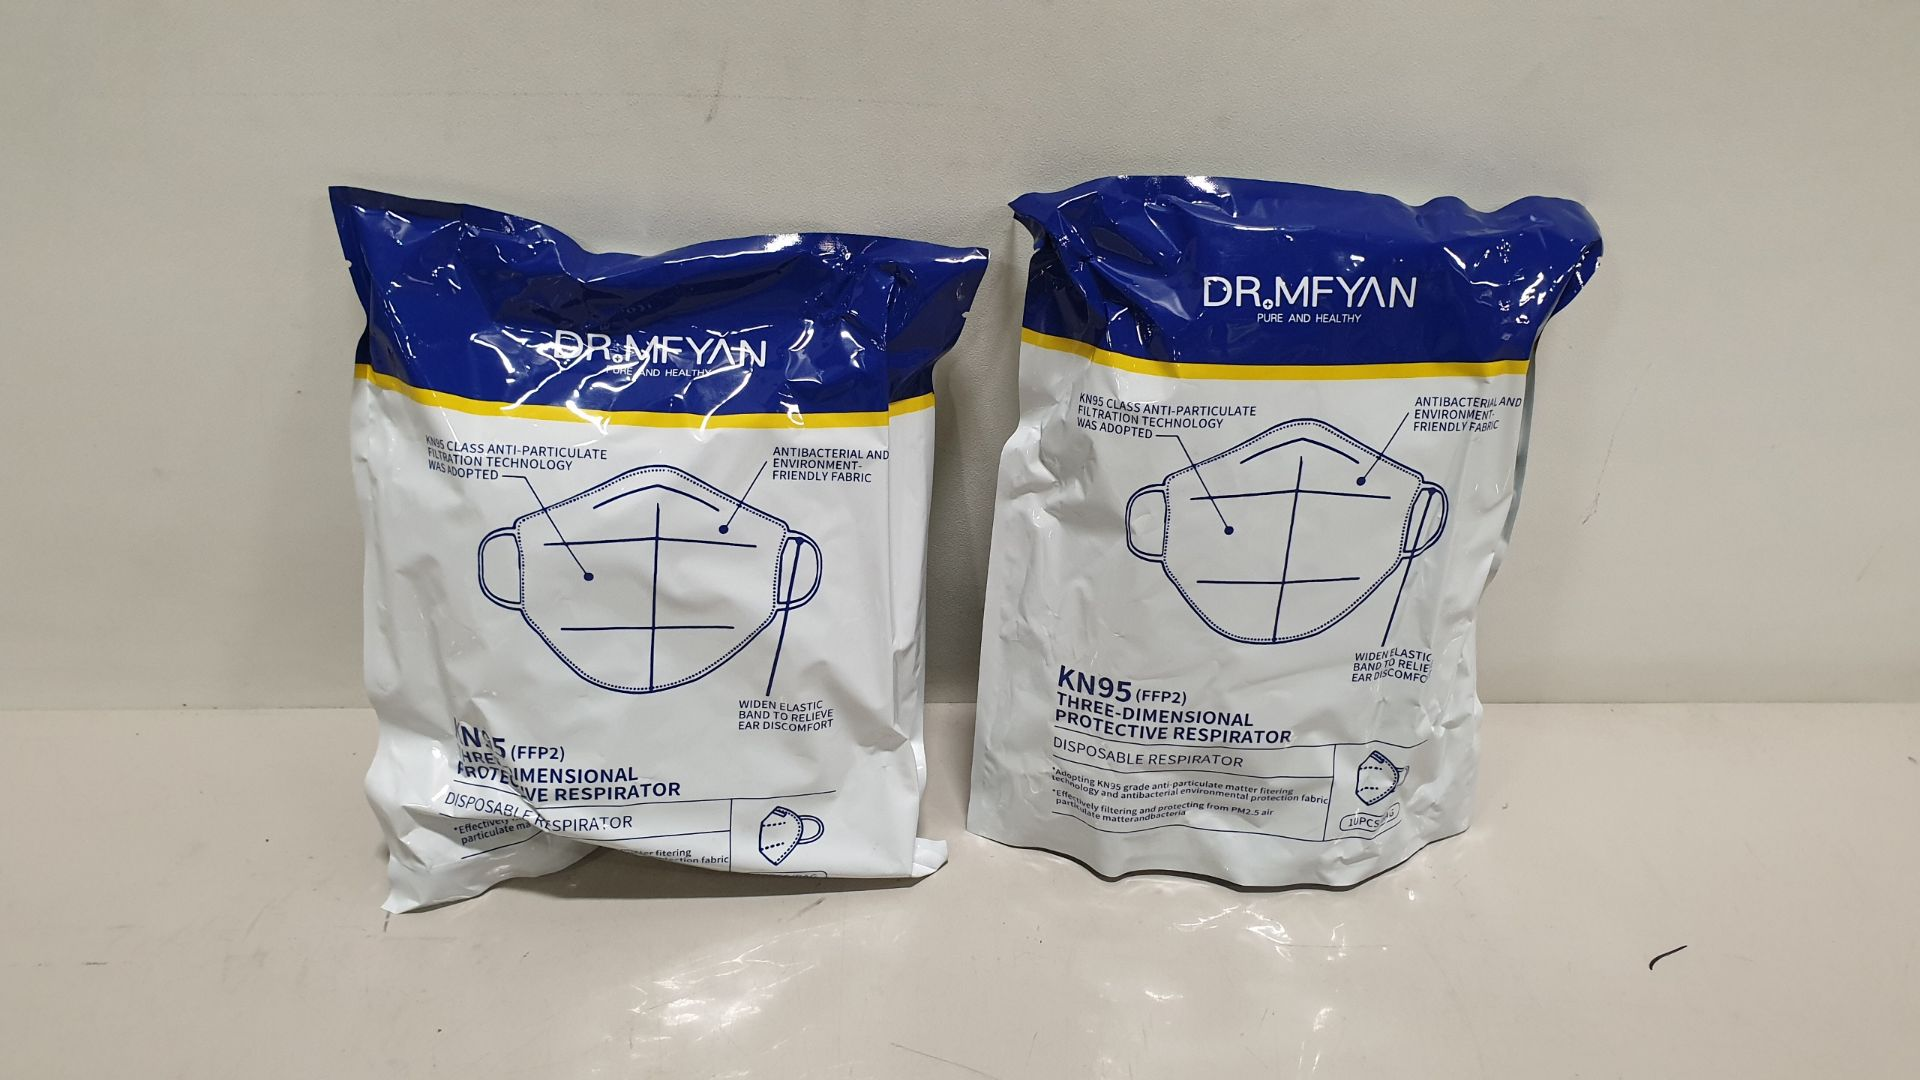 200 X BRAND NEW DR. MFYAN KN95 THREE DIMENSIONAL PROTECTIVE RESPIRATOR 3 YEAR SHELF LIFE (